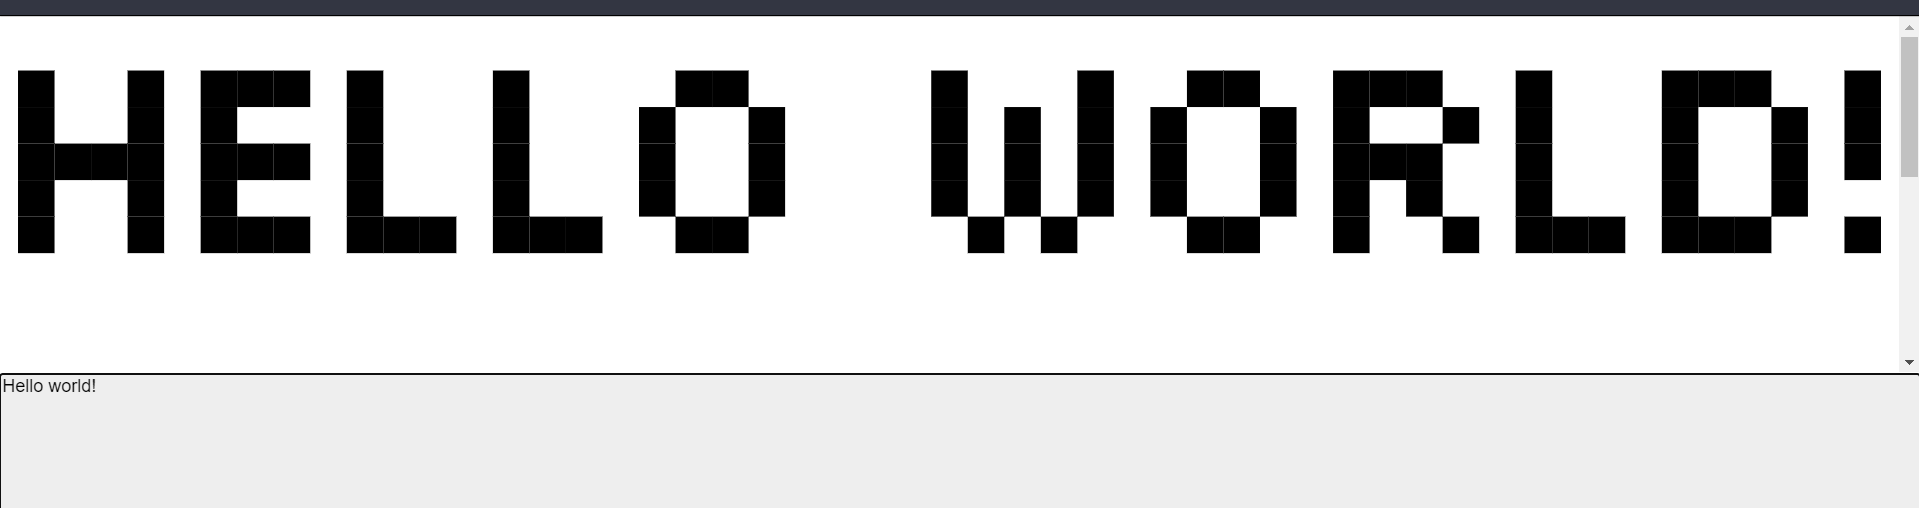 Build a React.js Pixel Art Text Generator in Browser Using HTML5 CSS3 and Javascript Full Project For Beginners